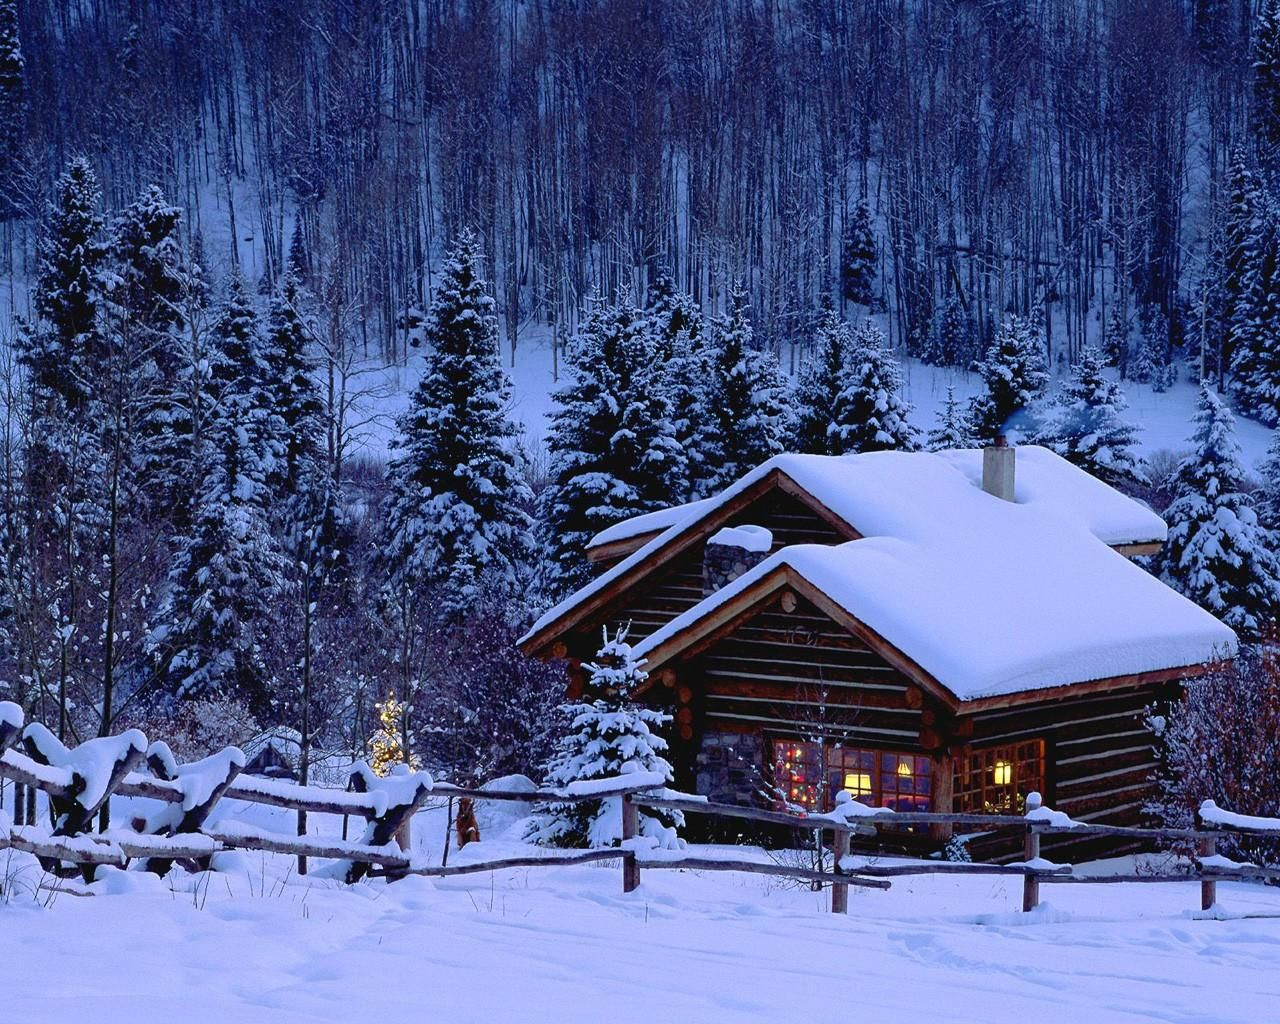 Winter Photography Incredible Snaps Winter Cabin Cabins In The Woods Cabin